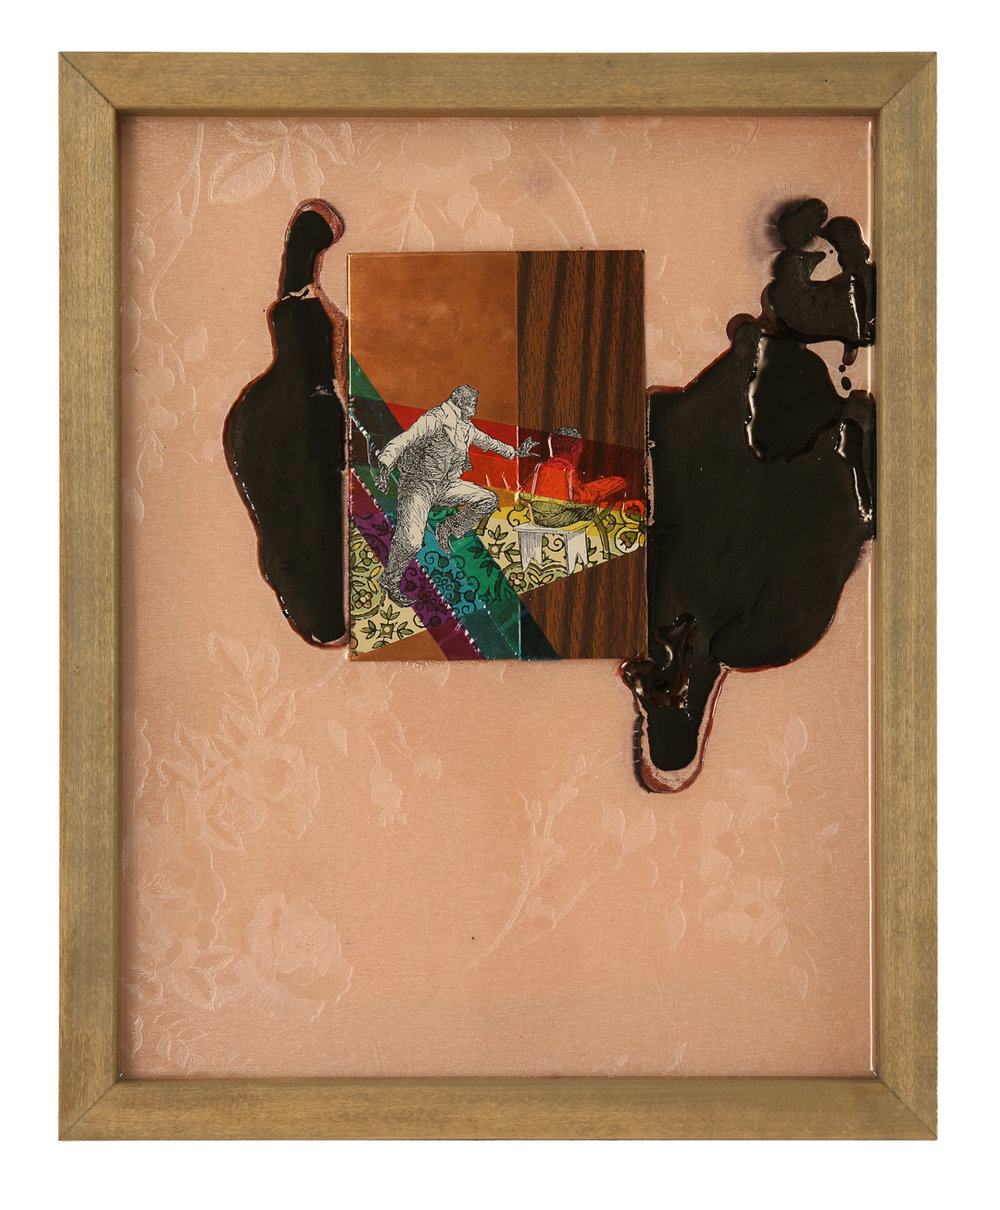 "Island Suite Part 4: You Should Take It Slow   2016 16"" x 13"" Paper, copper plate, cellophane, vinyl and shoe polish in wood frame"